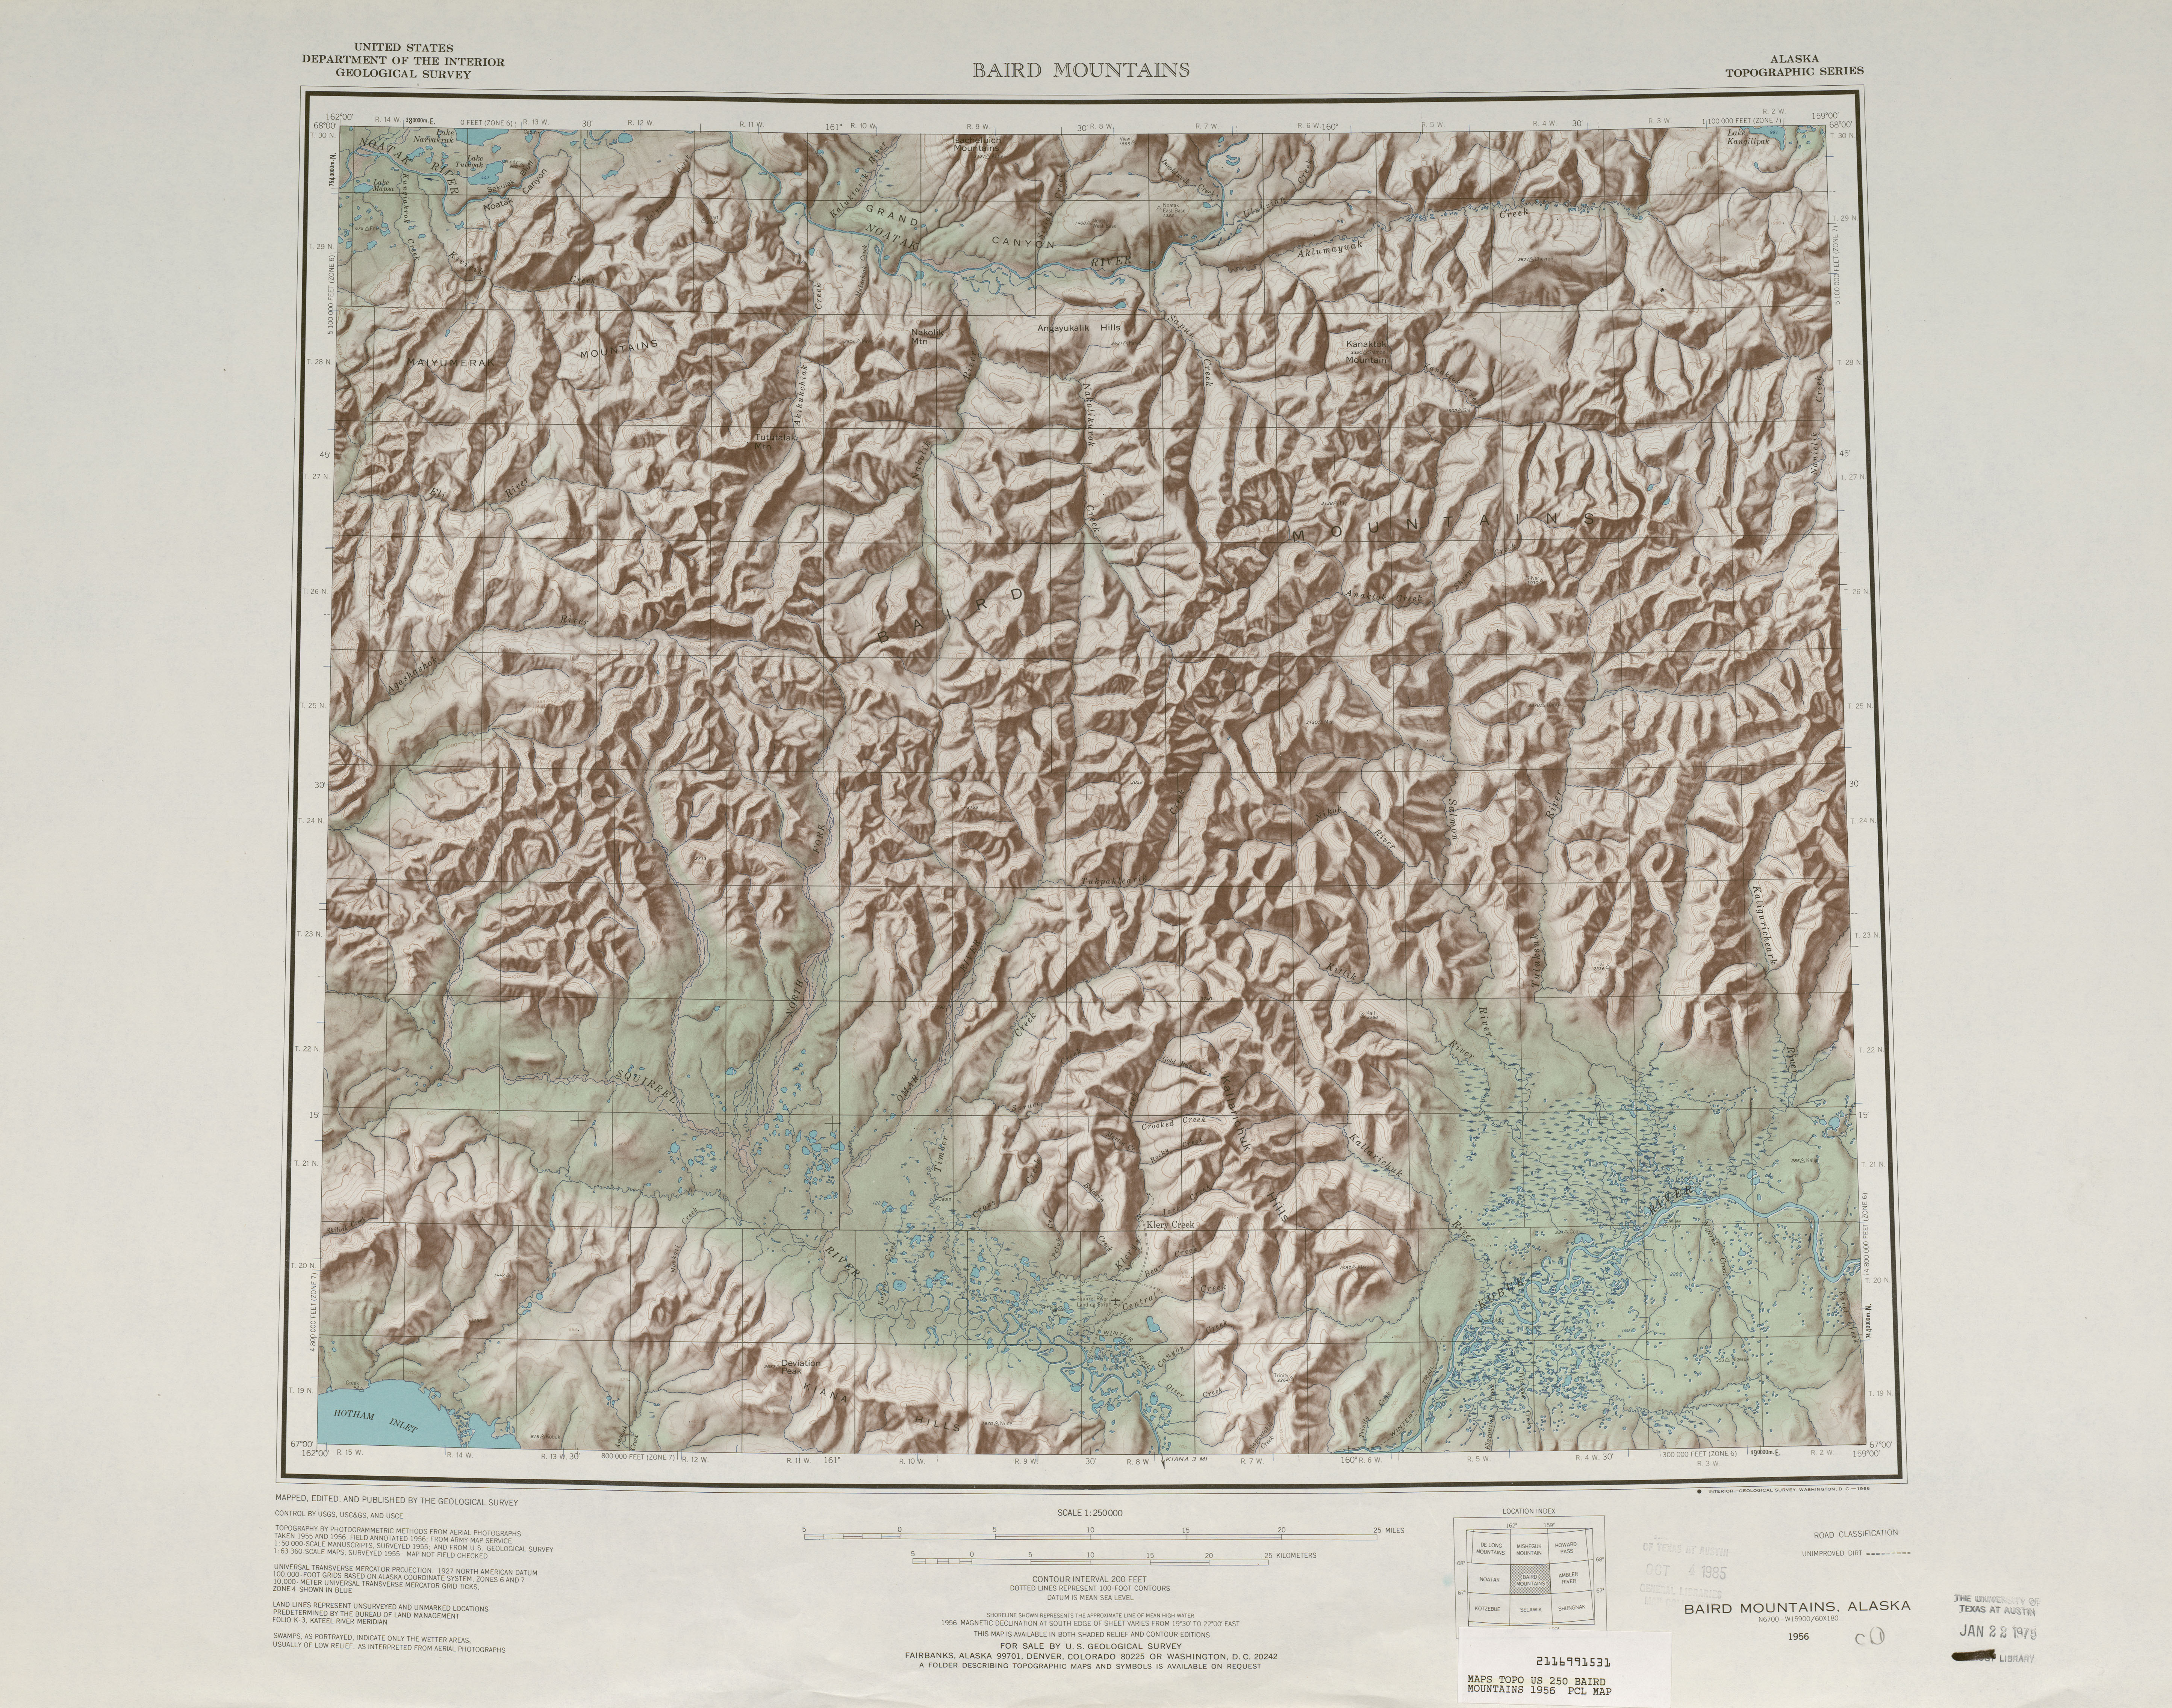 Hoja Baird Mountains del Mapa de Relieve Sombreado de los Estados Unidos 1956